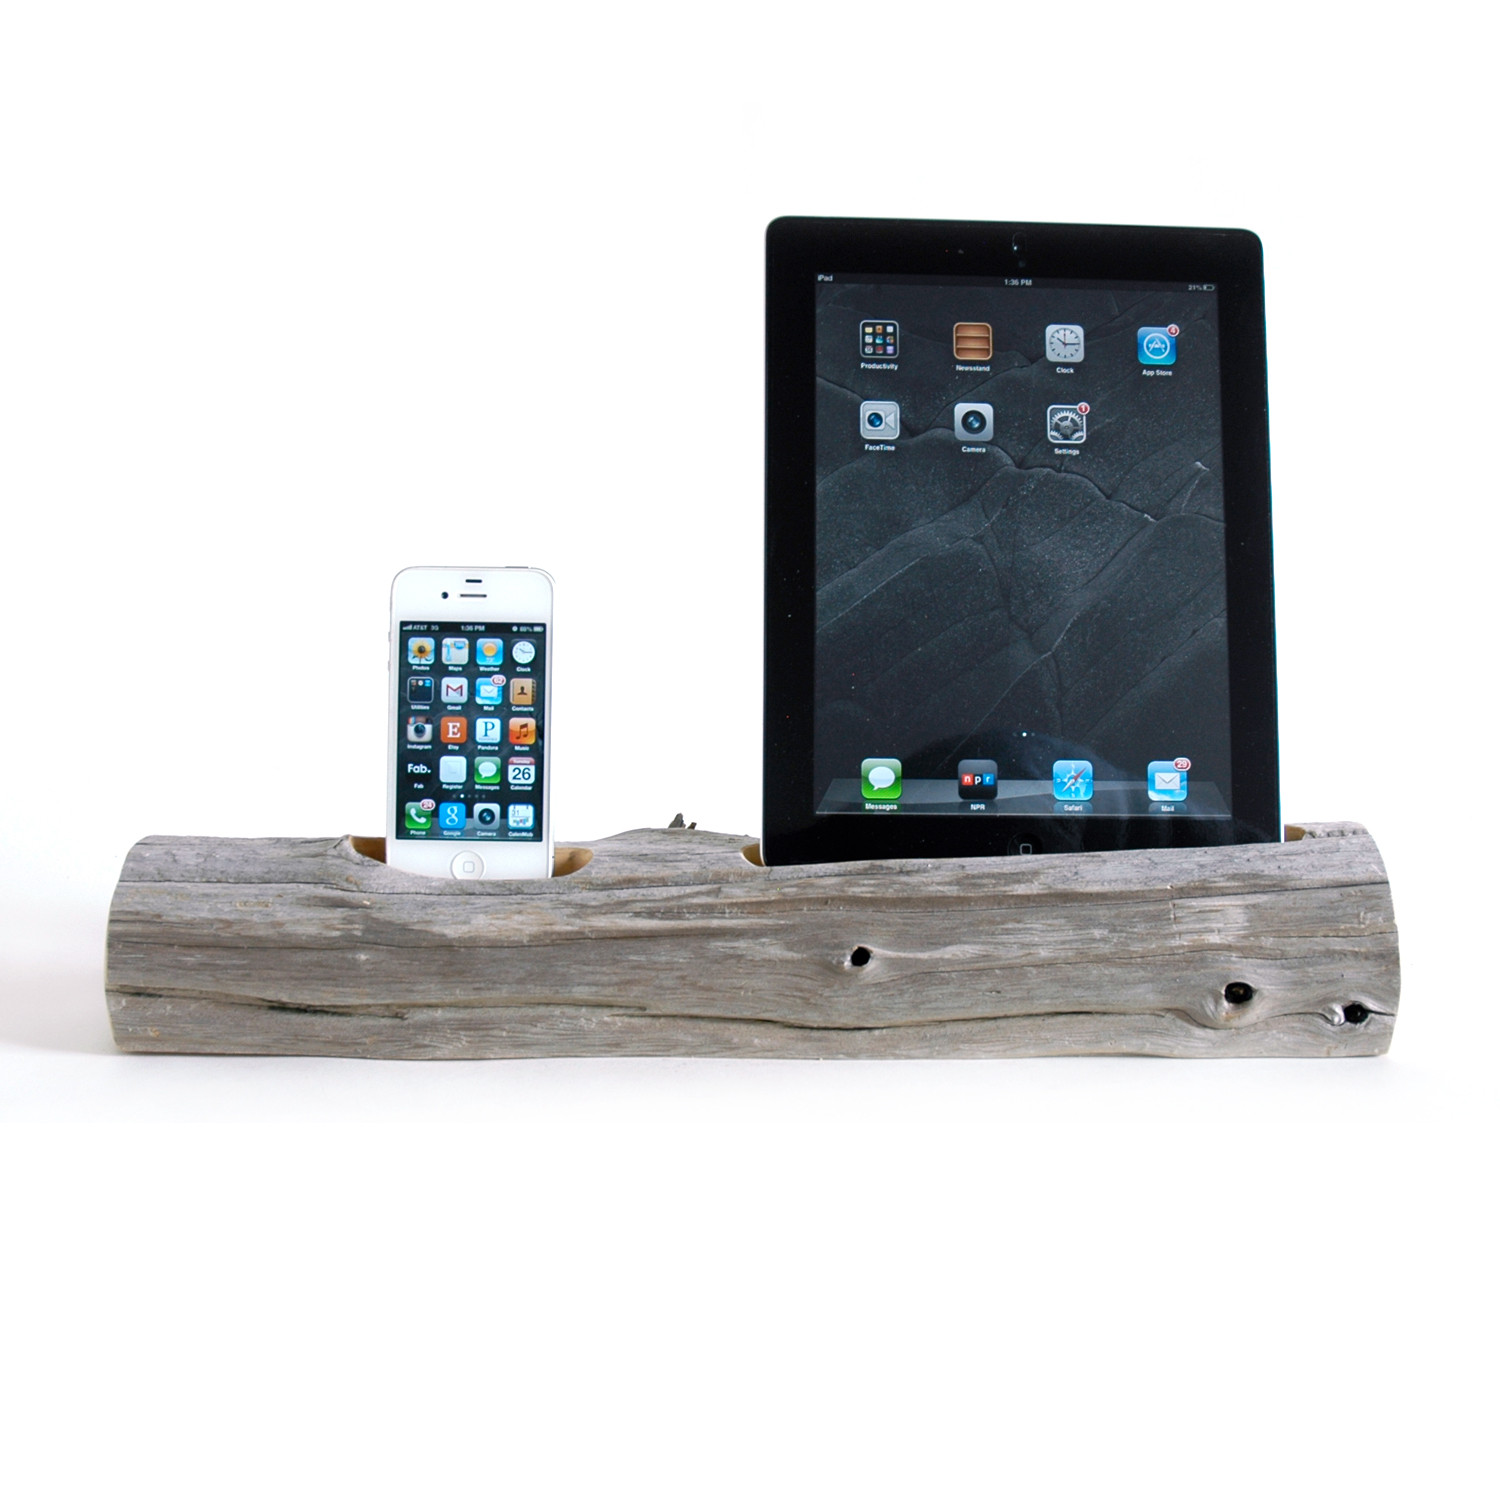 driftwood docking station ipad phone ipad 2 3 iphone 5 6 6 docksmith touch of modern. Black Bedroom Furniture Sets. Home Design Ideas